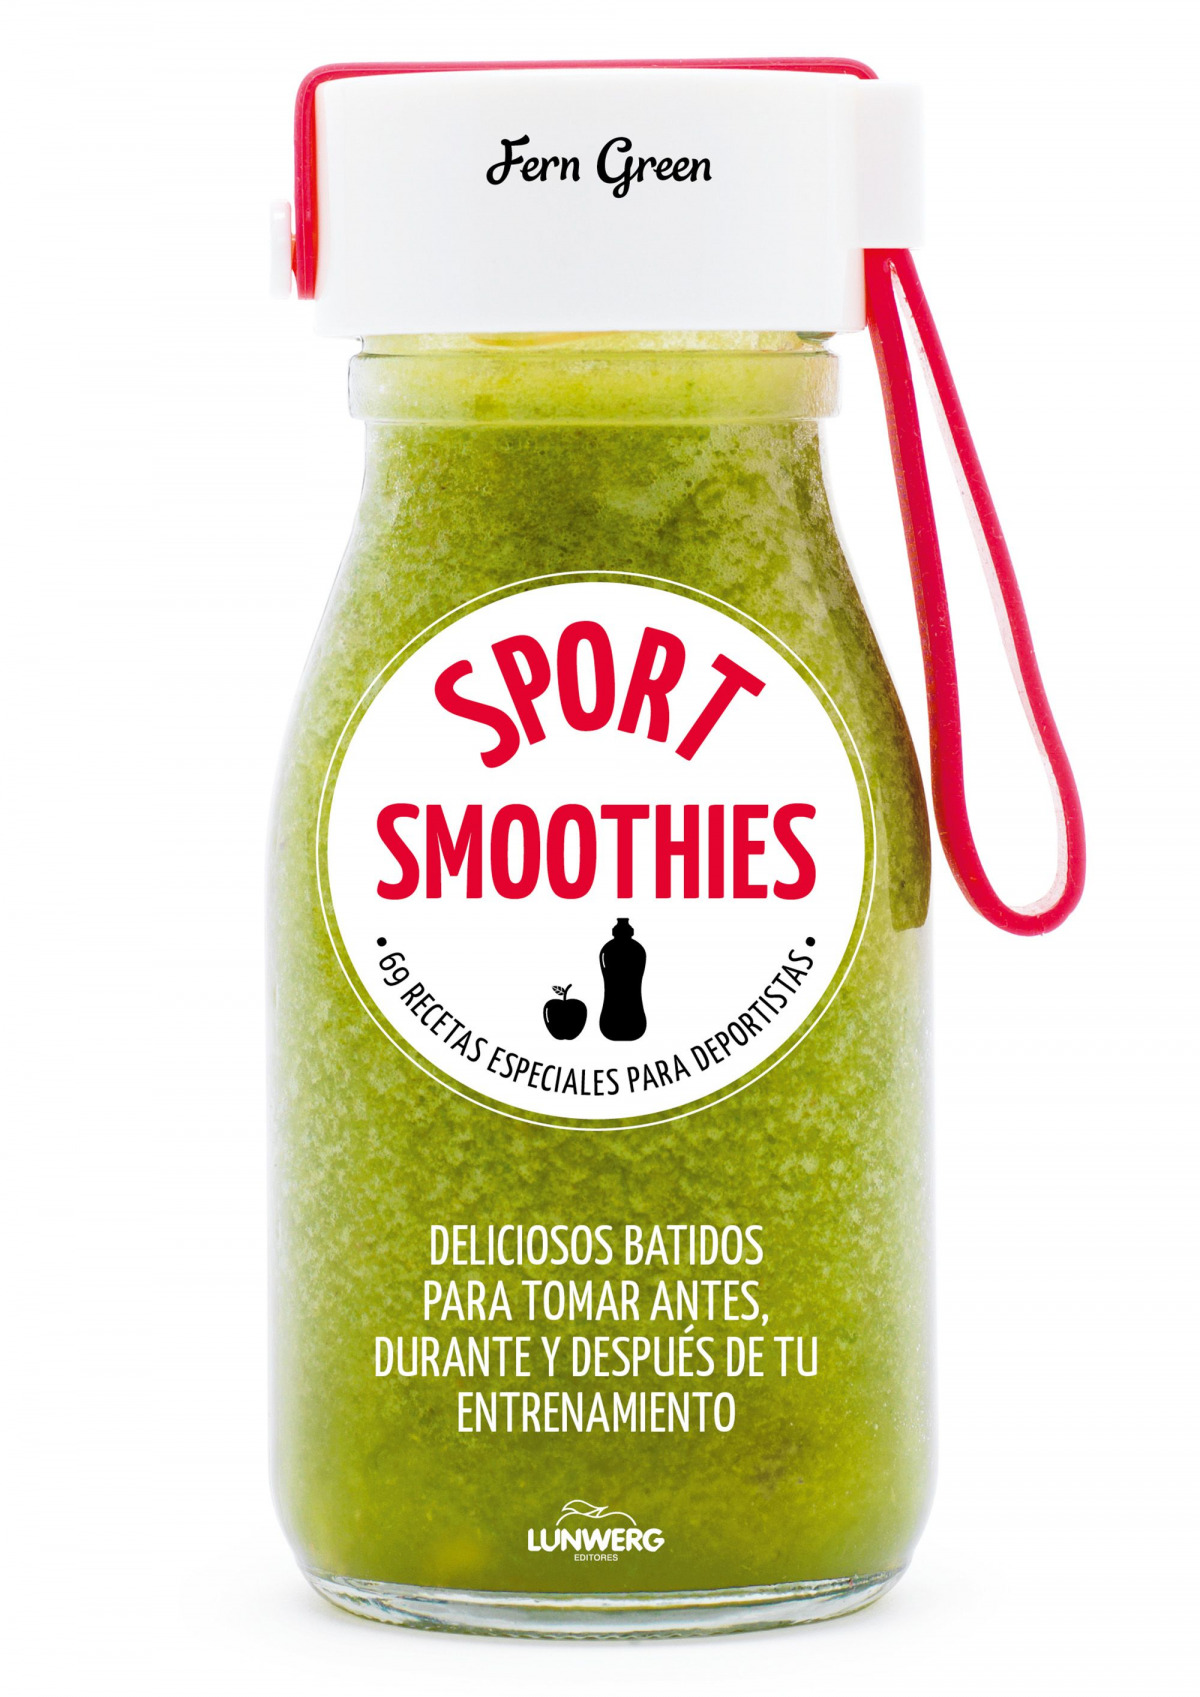 SPORTS SMOOTHIES